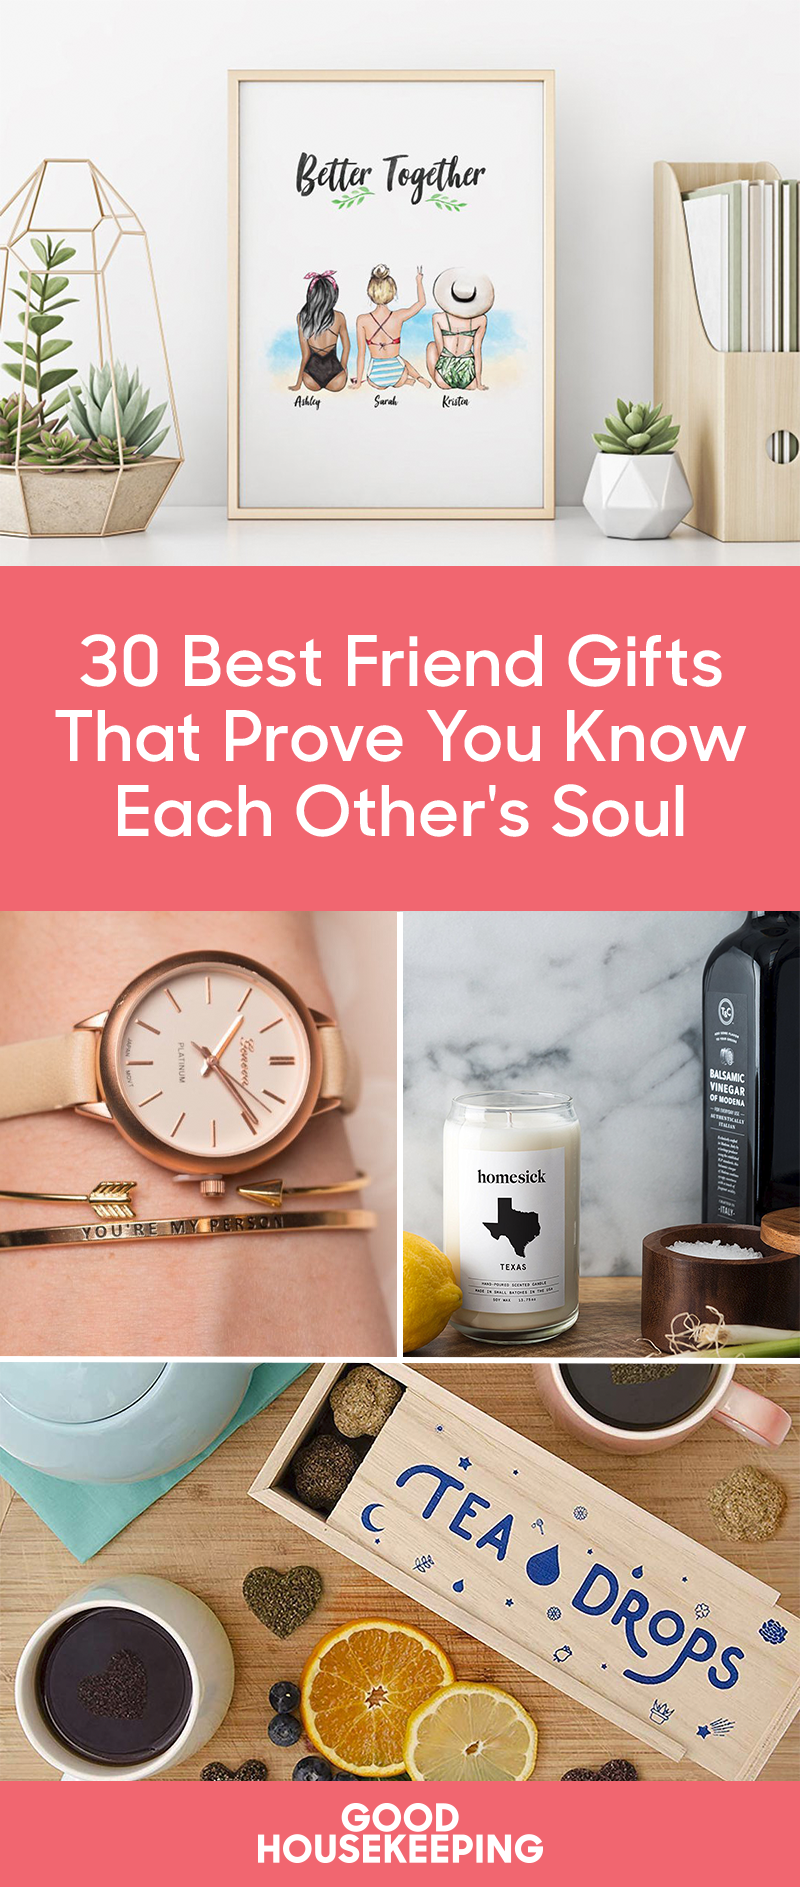 30 Best Friend Gift Ideas Cute Christmas Gifts For Your Female